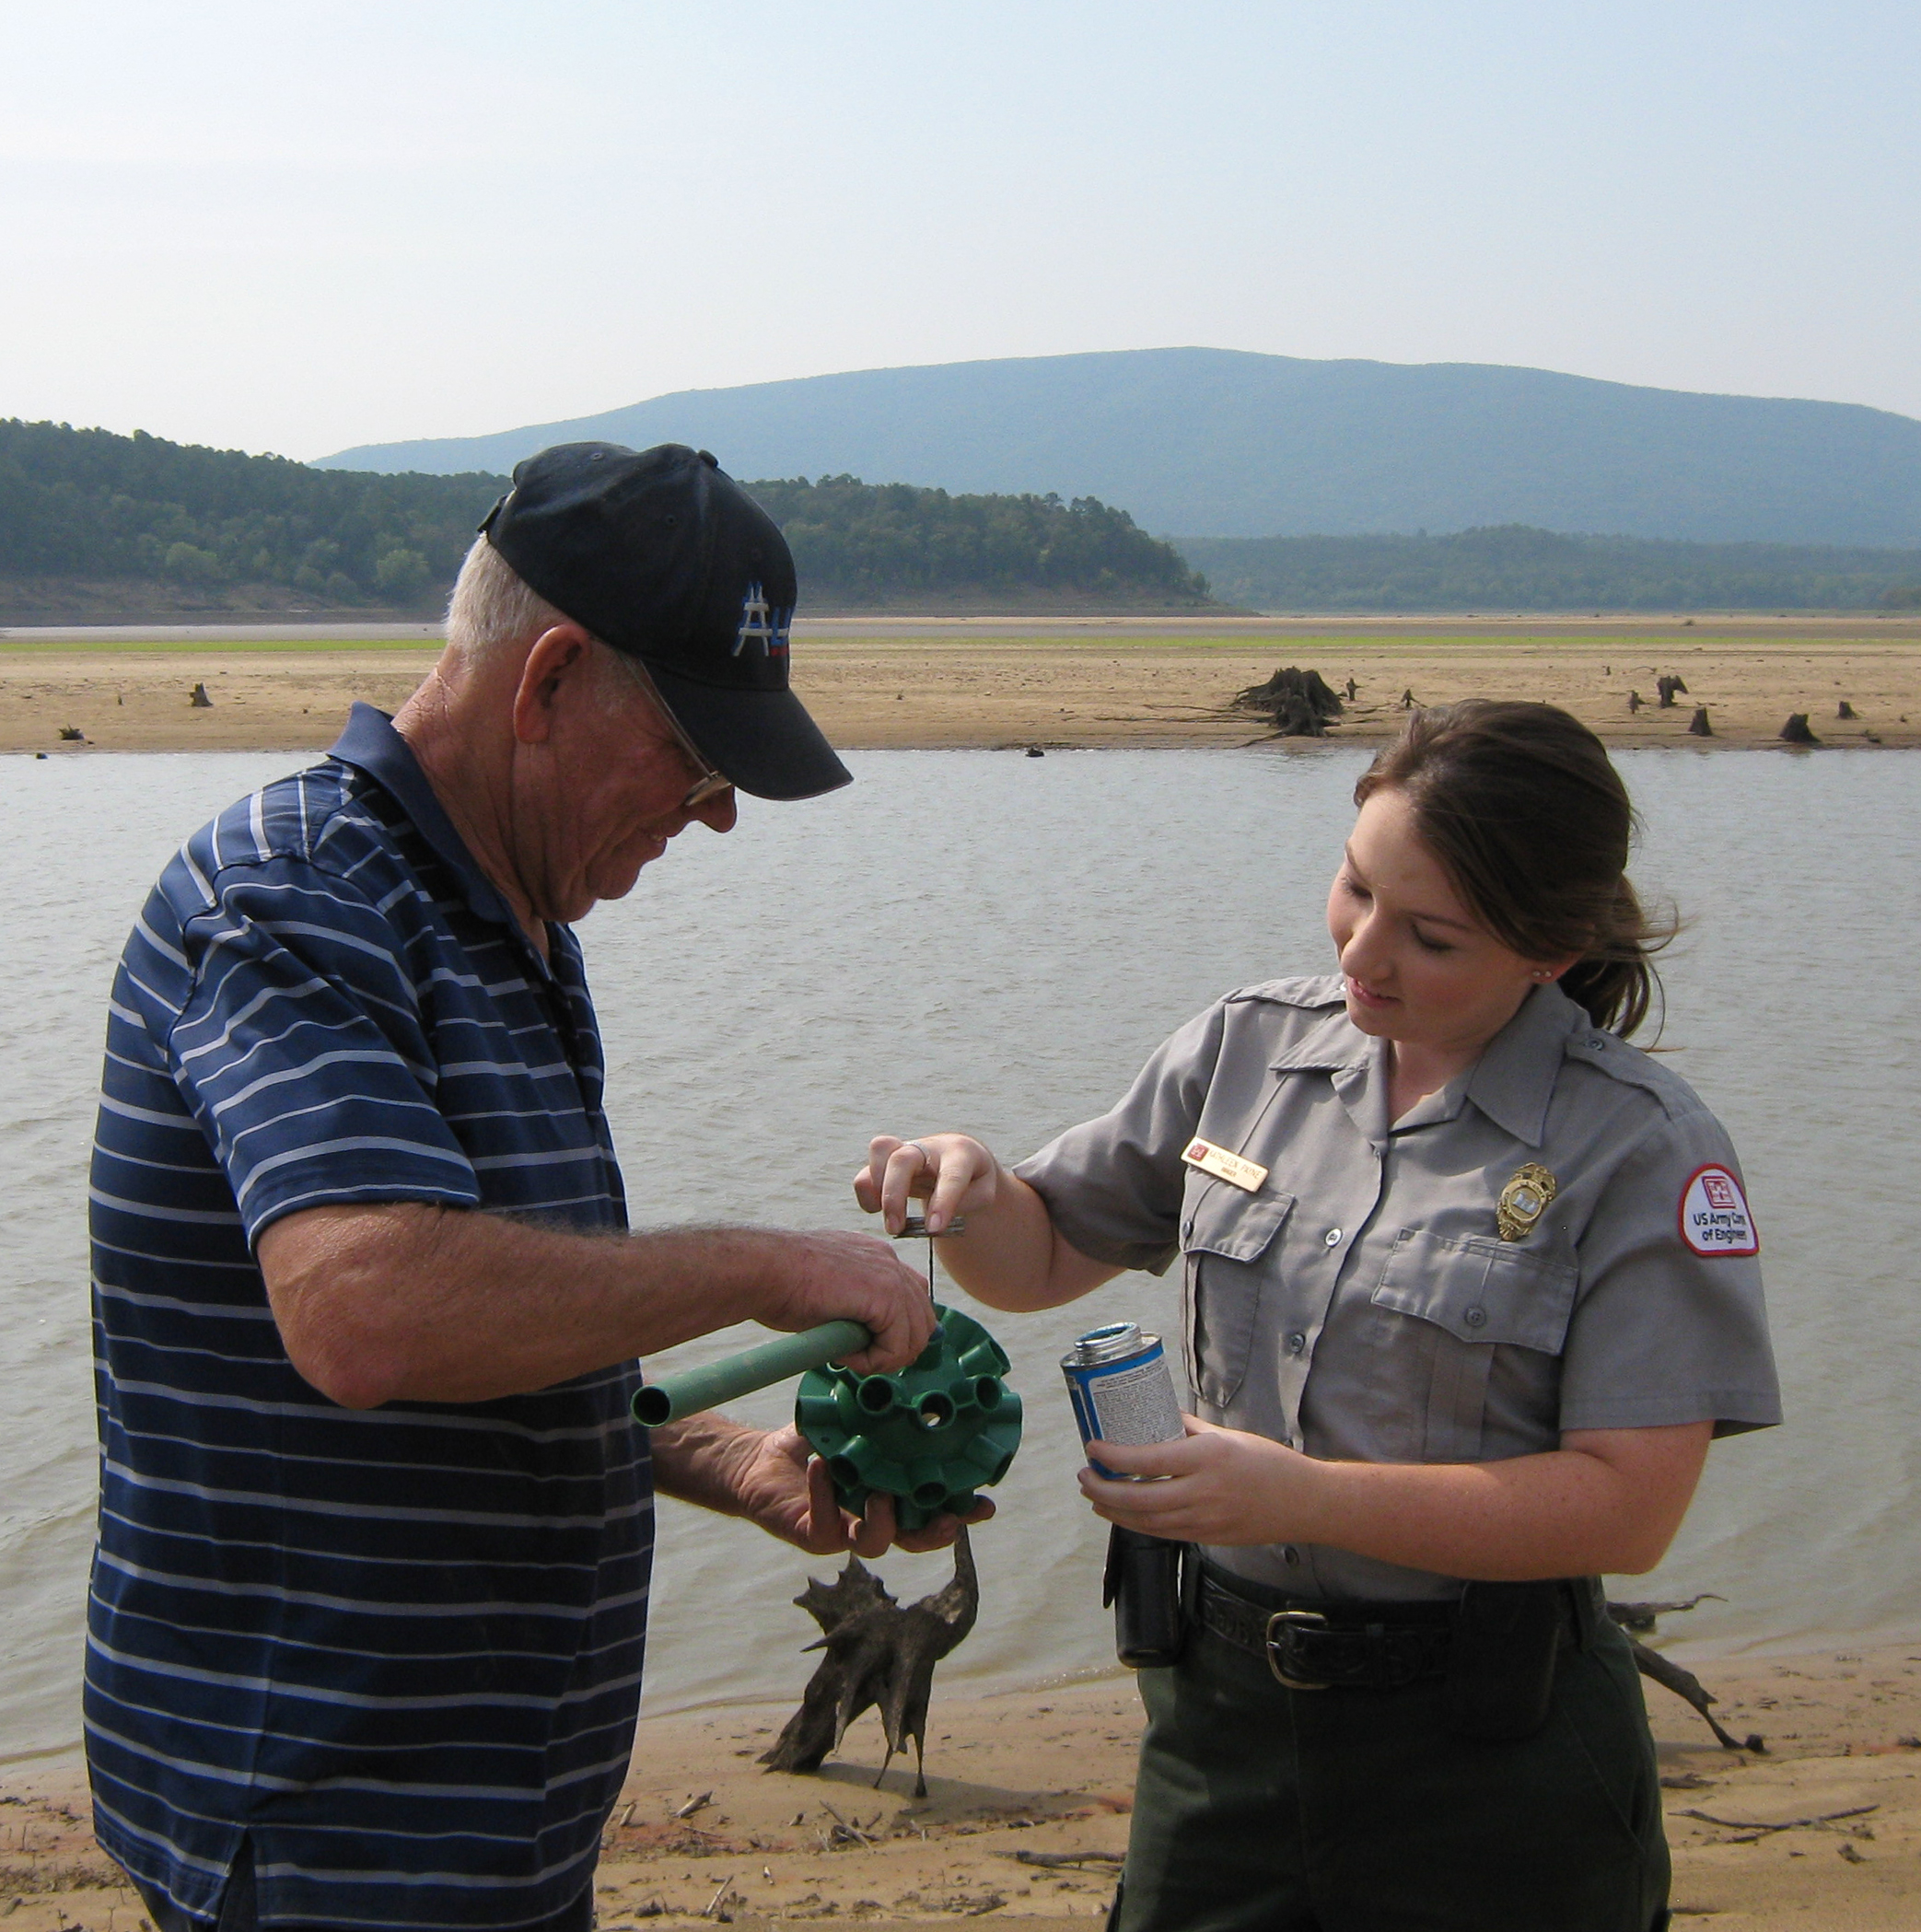 Volunteer and Park Ranger putting together a fish shelter